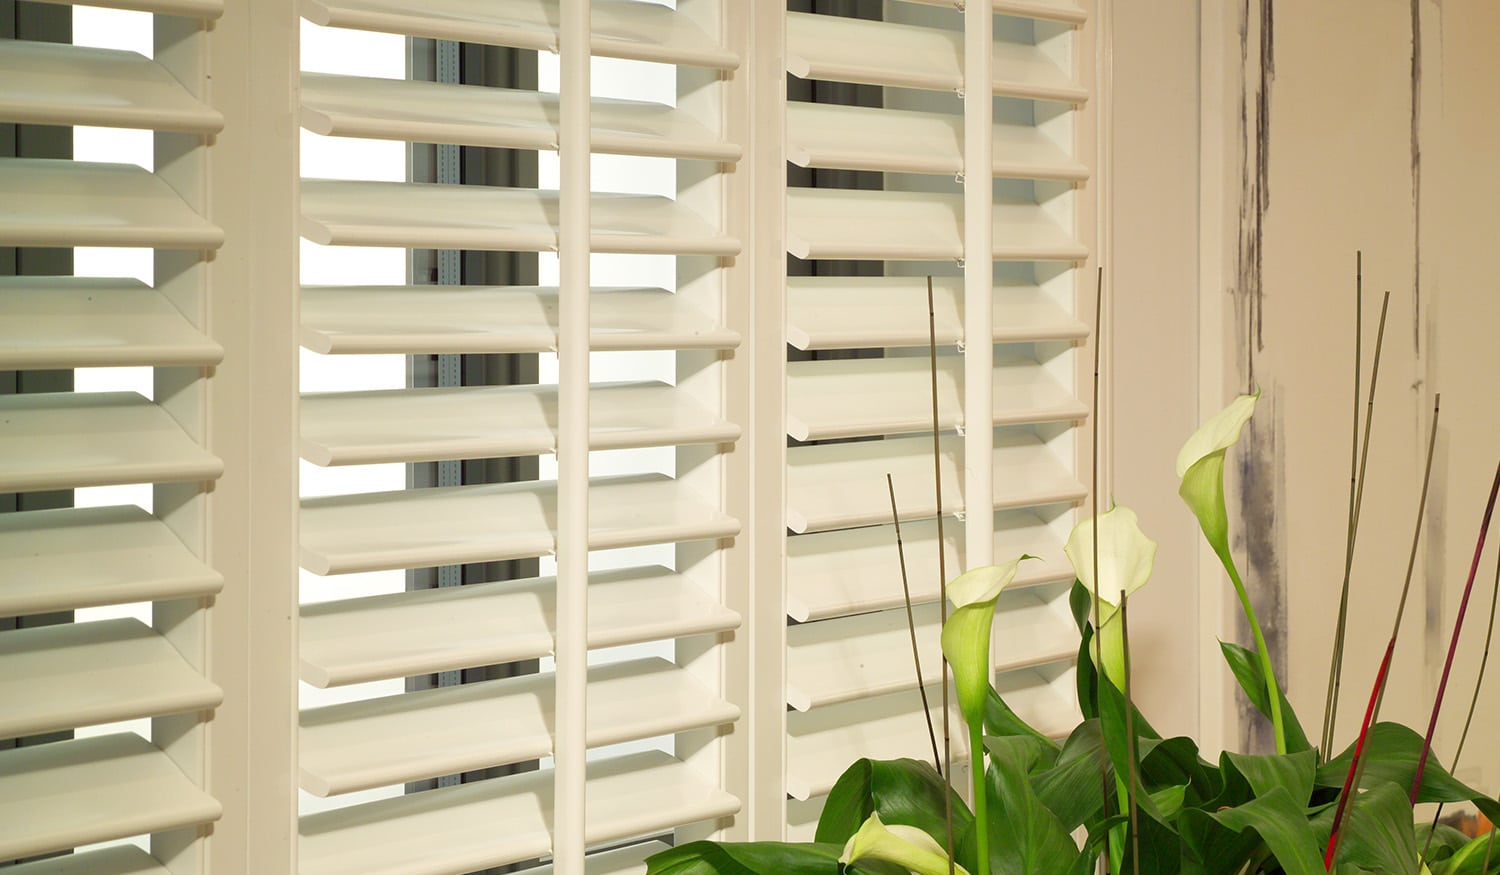 s craft shutters plantation shutters crestwood of Interior Design Contracts and Fees Interior Design Consultation Contract